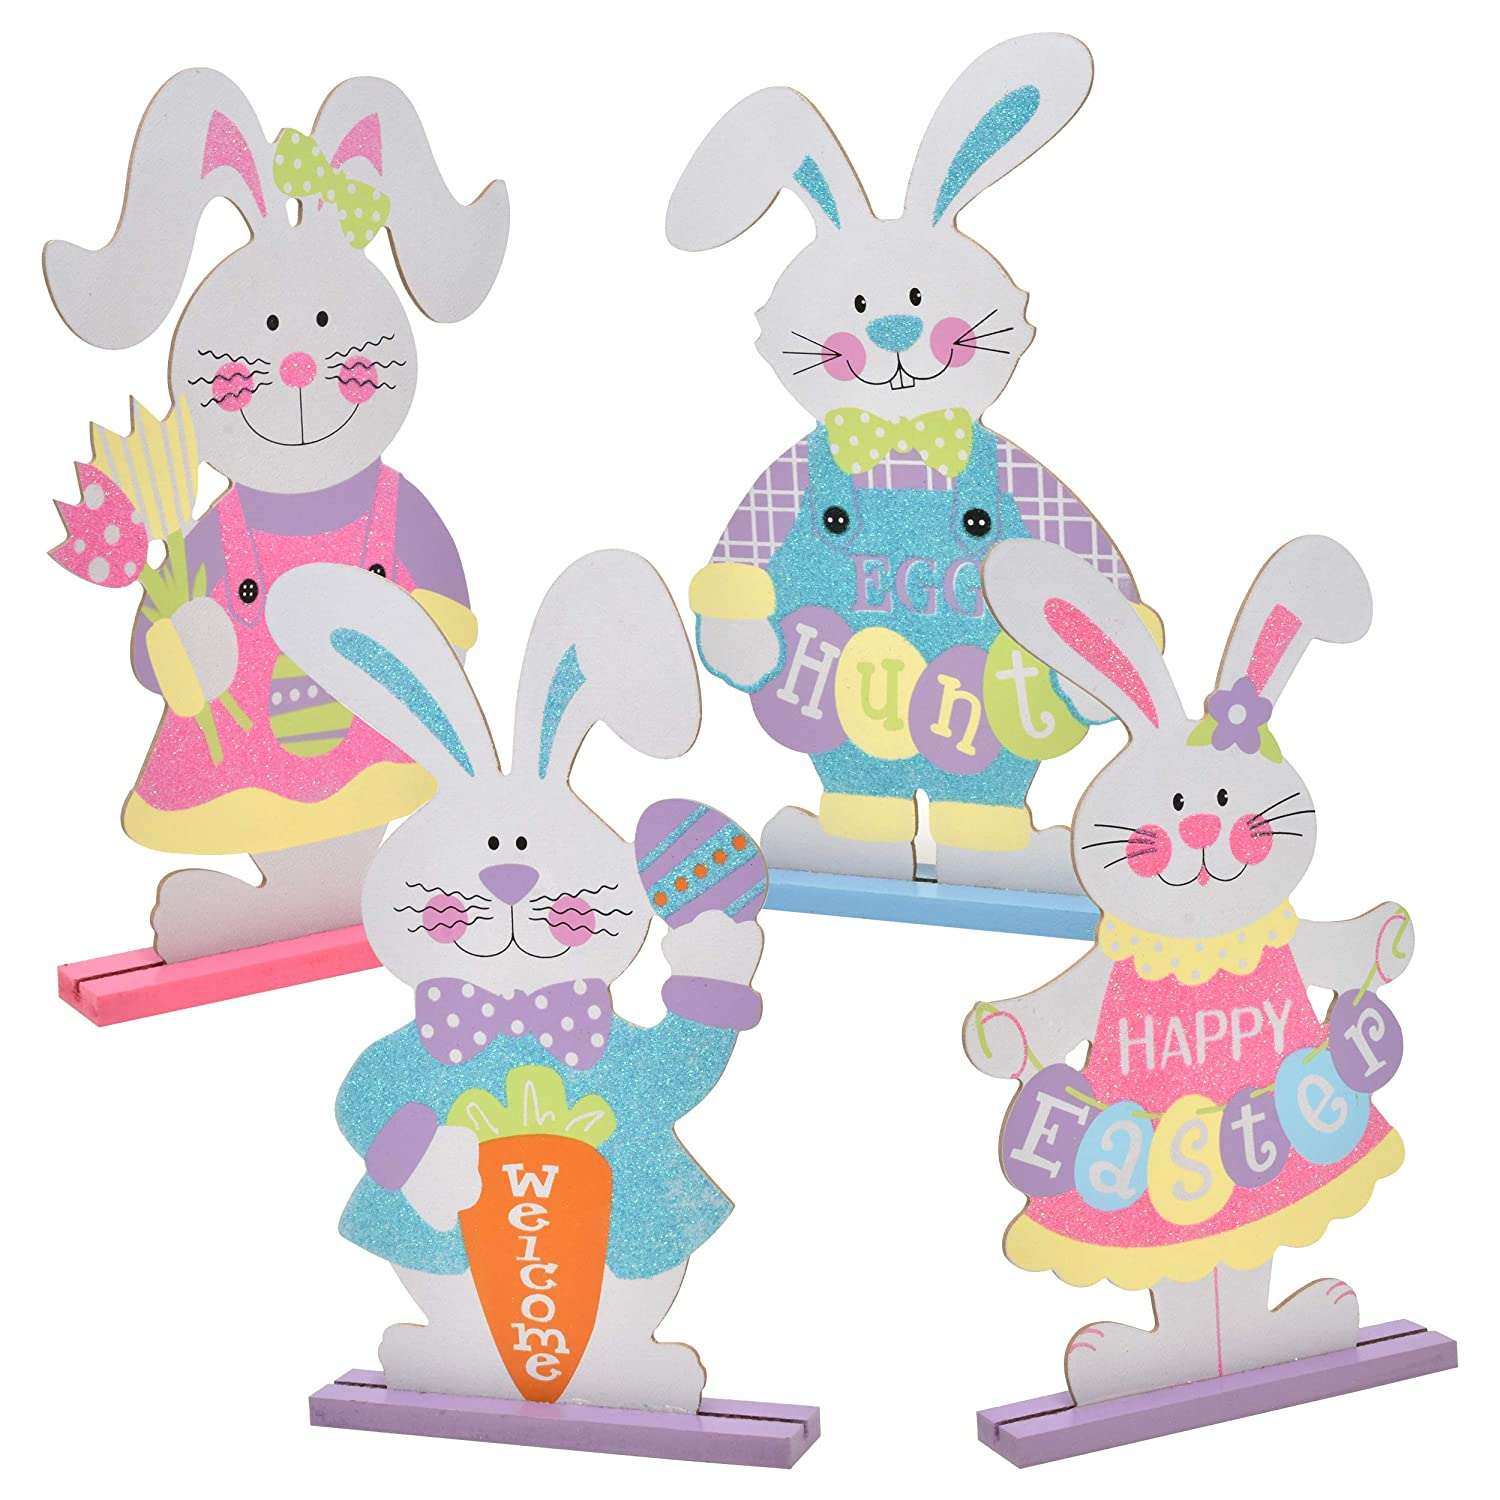 Gift Boutique 4 Easter Table Decor Centerpieces Bunny Decorations Spring Bunny Centerpiece Sculptures Statues Figurines for Home Outdoor Garden Yard Lawn and Patio Party Favors